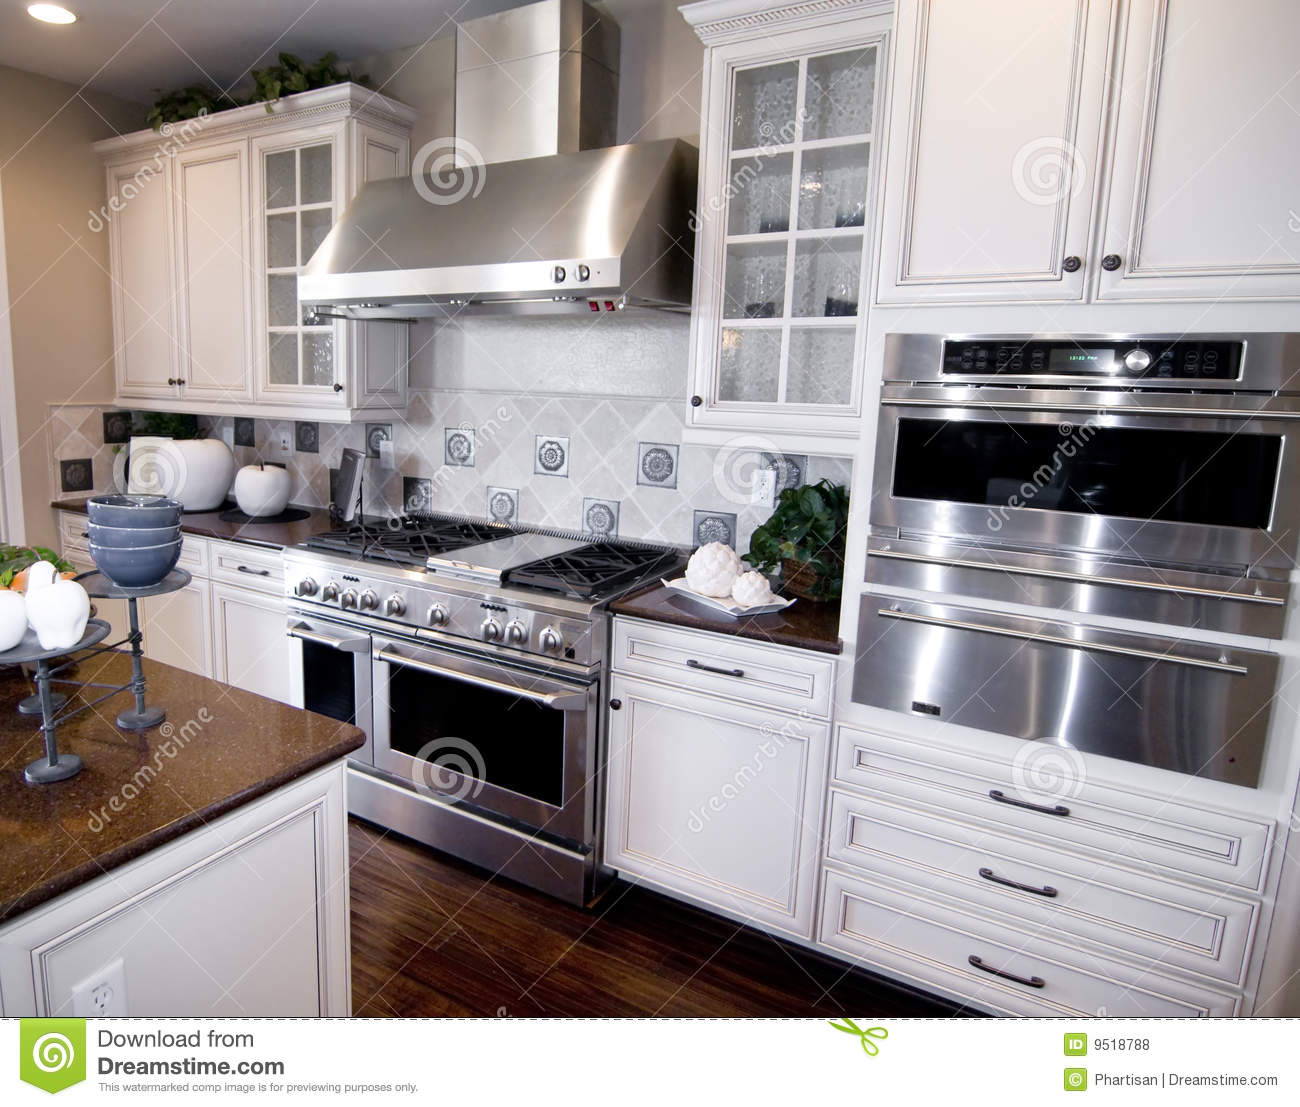 Orange Kitchen Room With White Cabinets Stock Image: Luxury Custom Built Kitchen Royalty Free Stock Photos